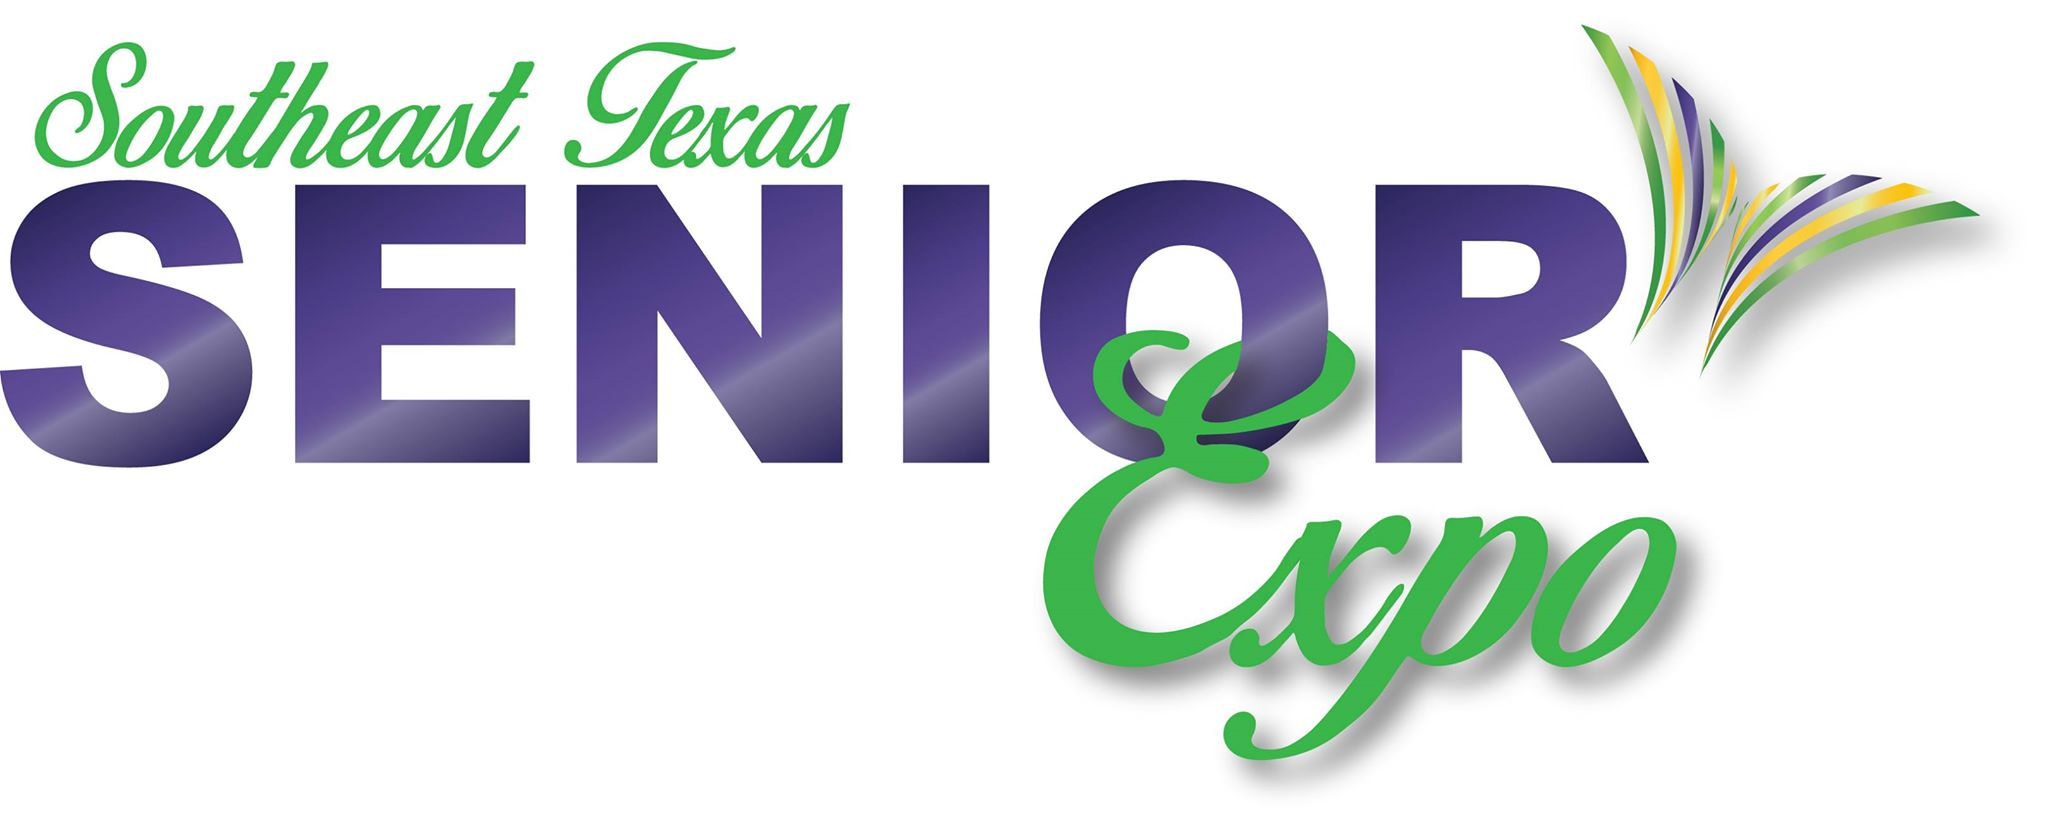 SETX Senior Expo, senior discount beaumont, senior entertainment Beaumont Tx, senior expo Beaumont, senior expo Lumberton TX